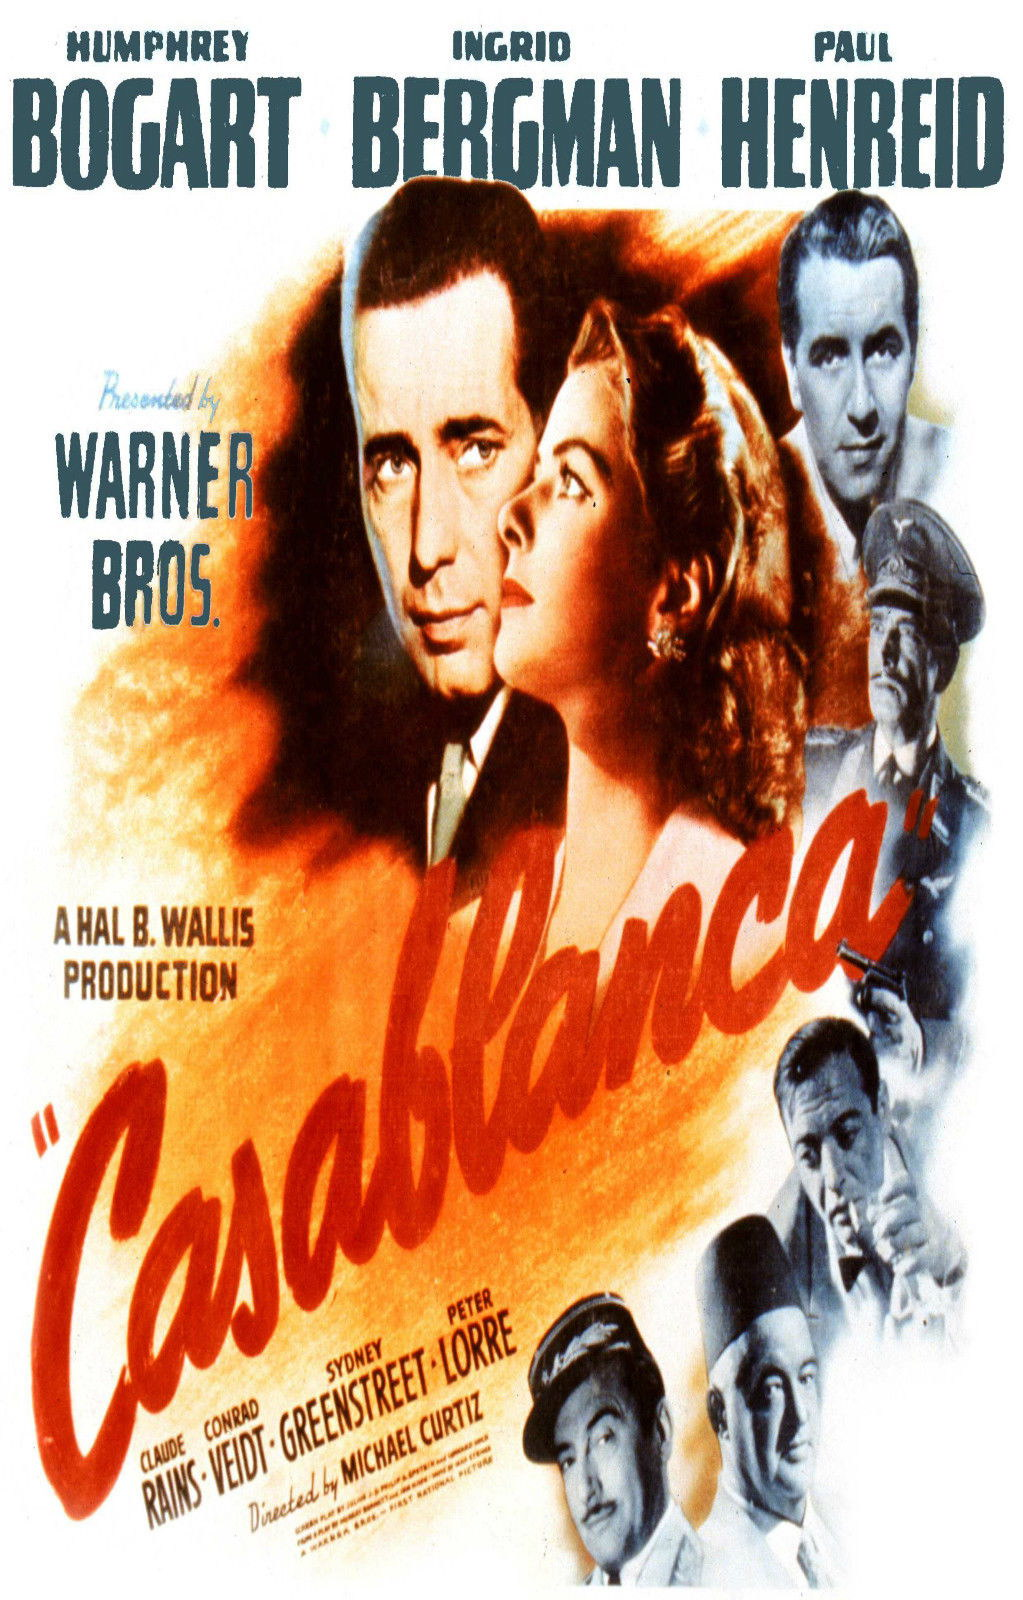 72423-CASABLANCA-Movie-1942-Hollywood-Classic-Wall-Print-Poster-Affiche